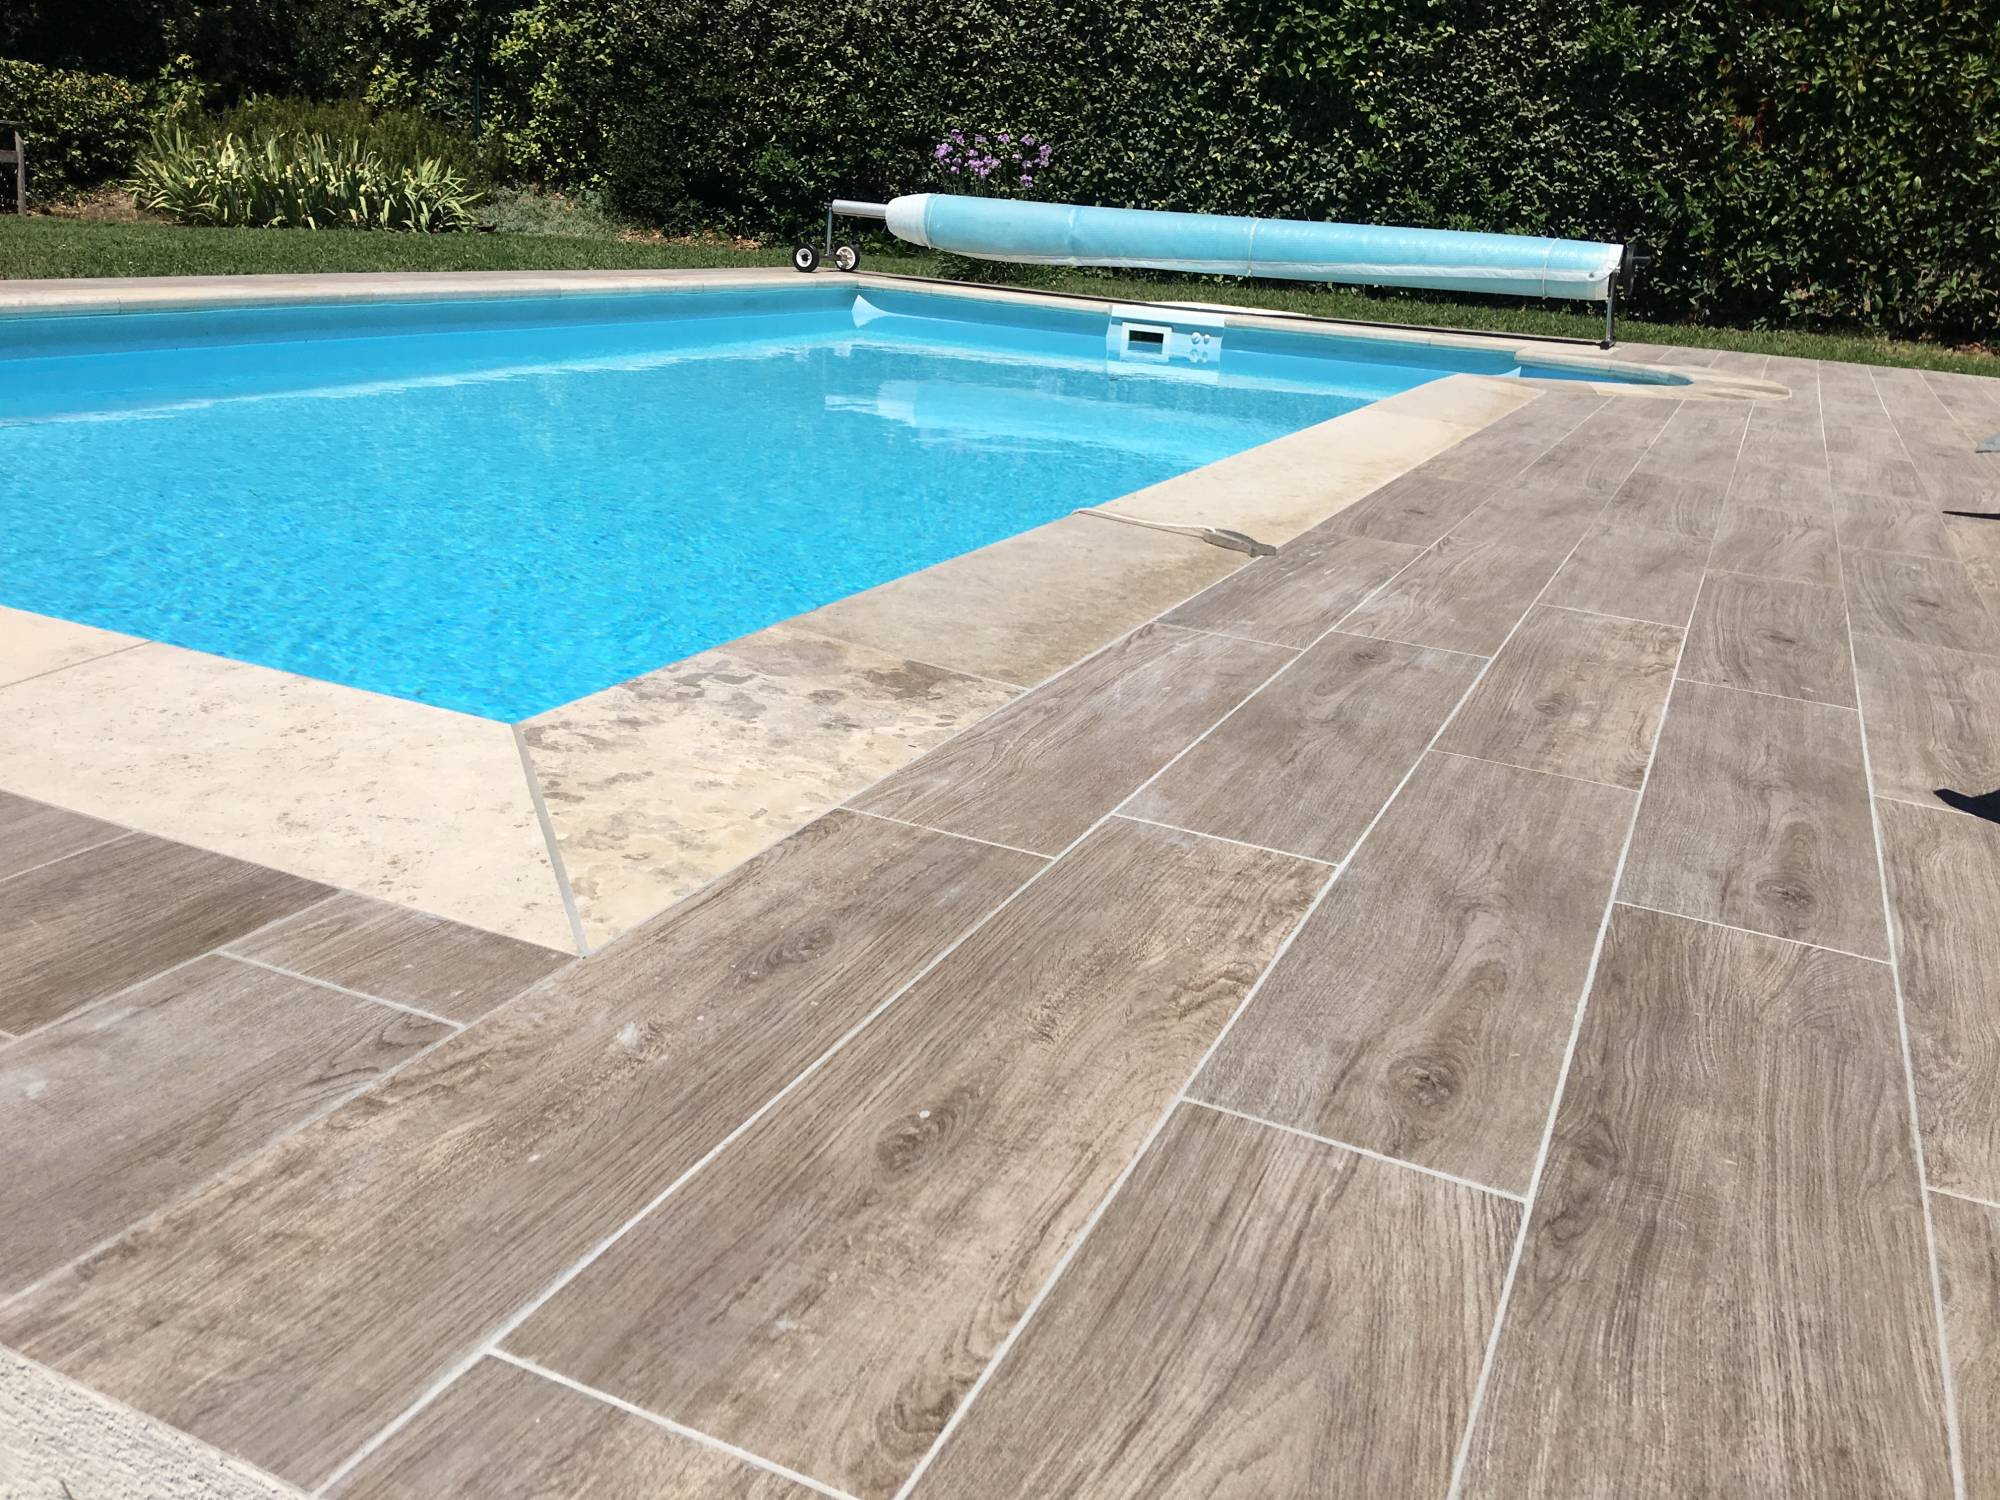 Carrelage ceramique pour piscine id es for Carrelage piscine